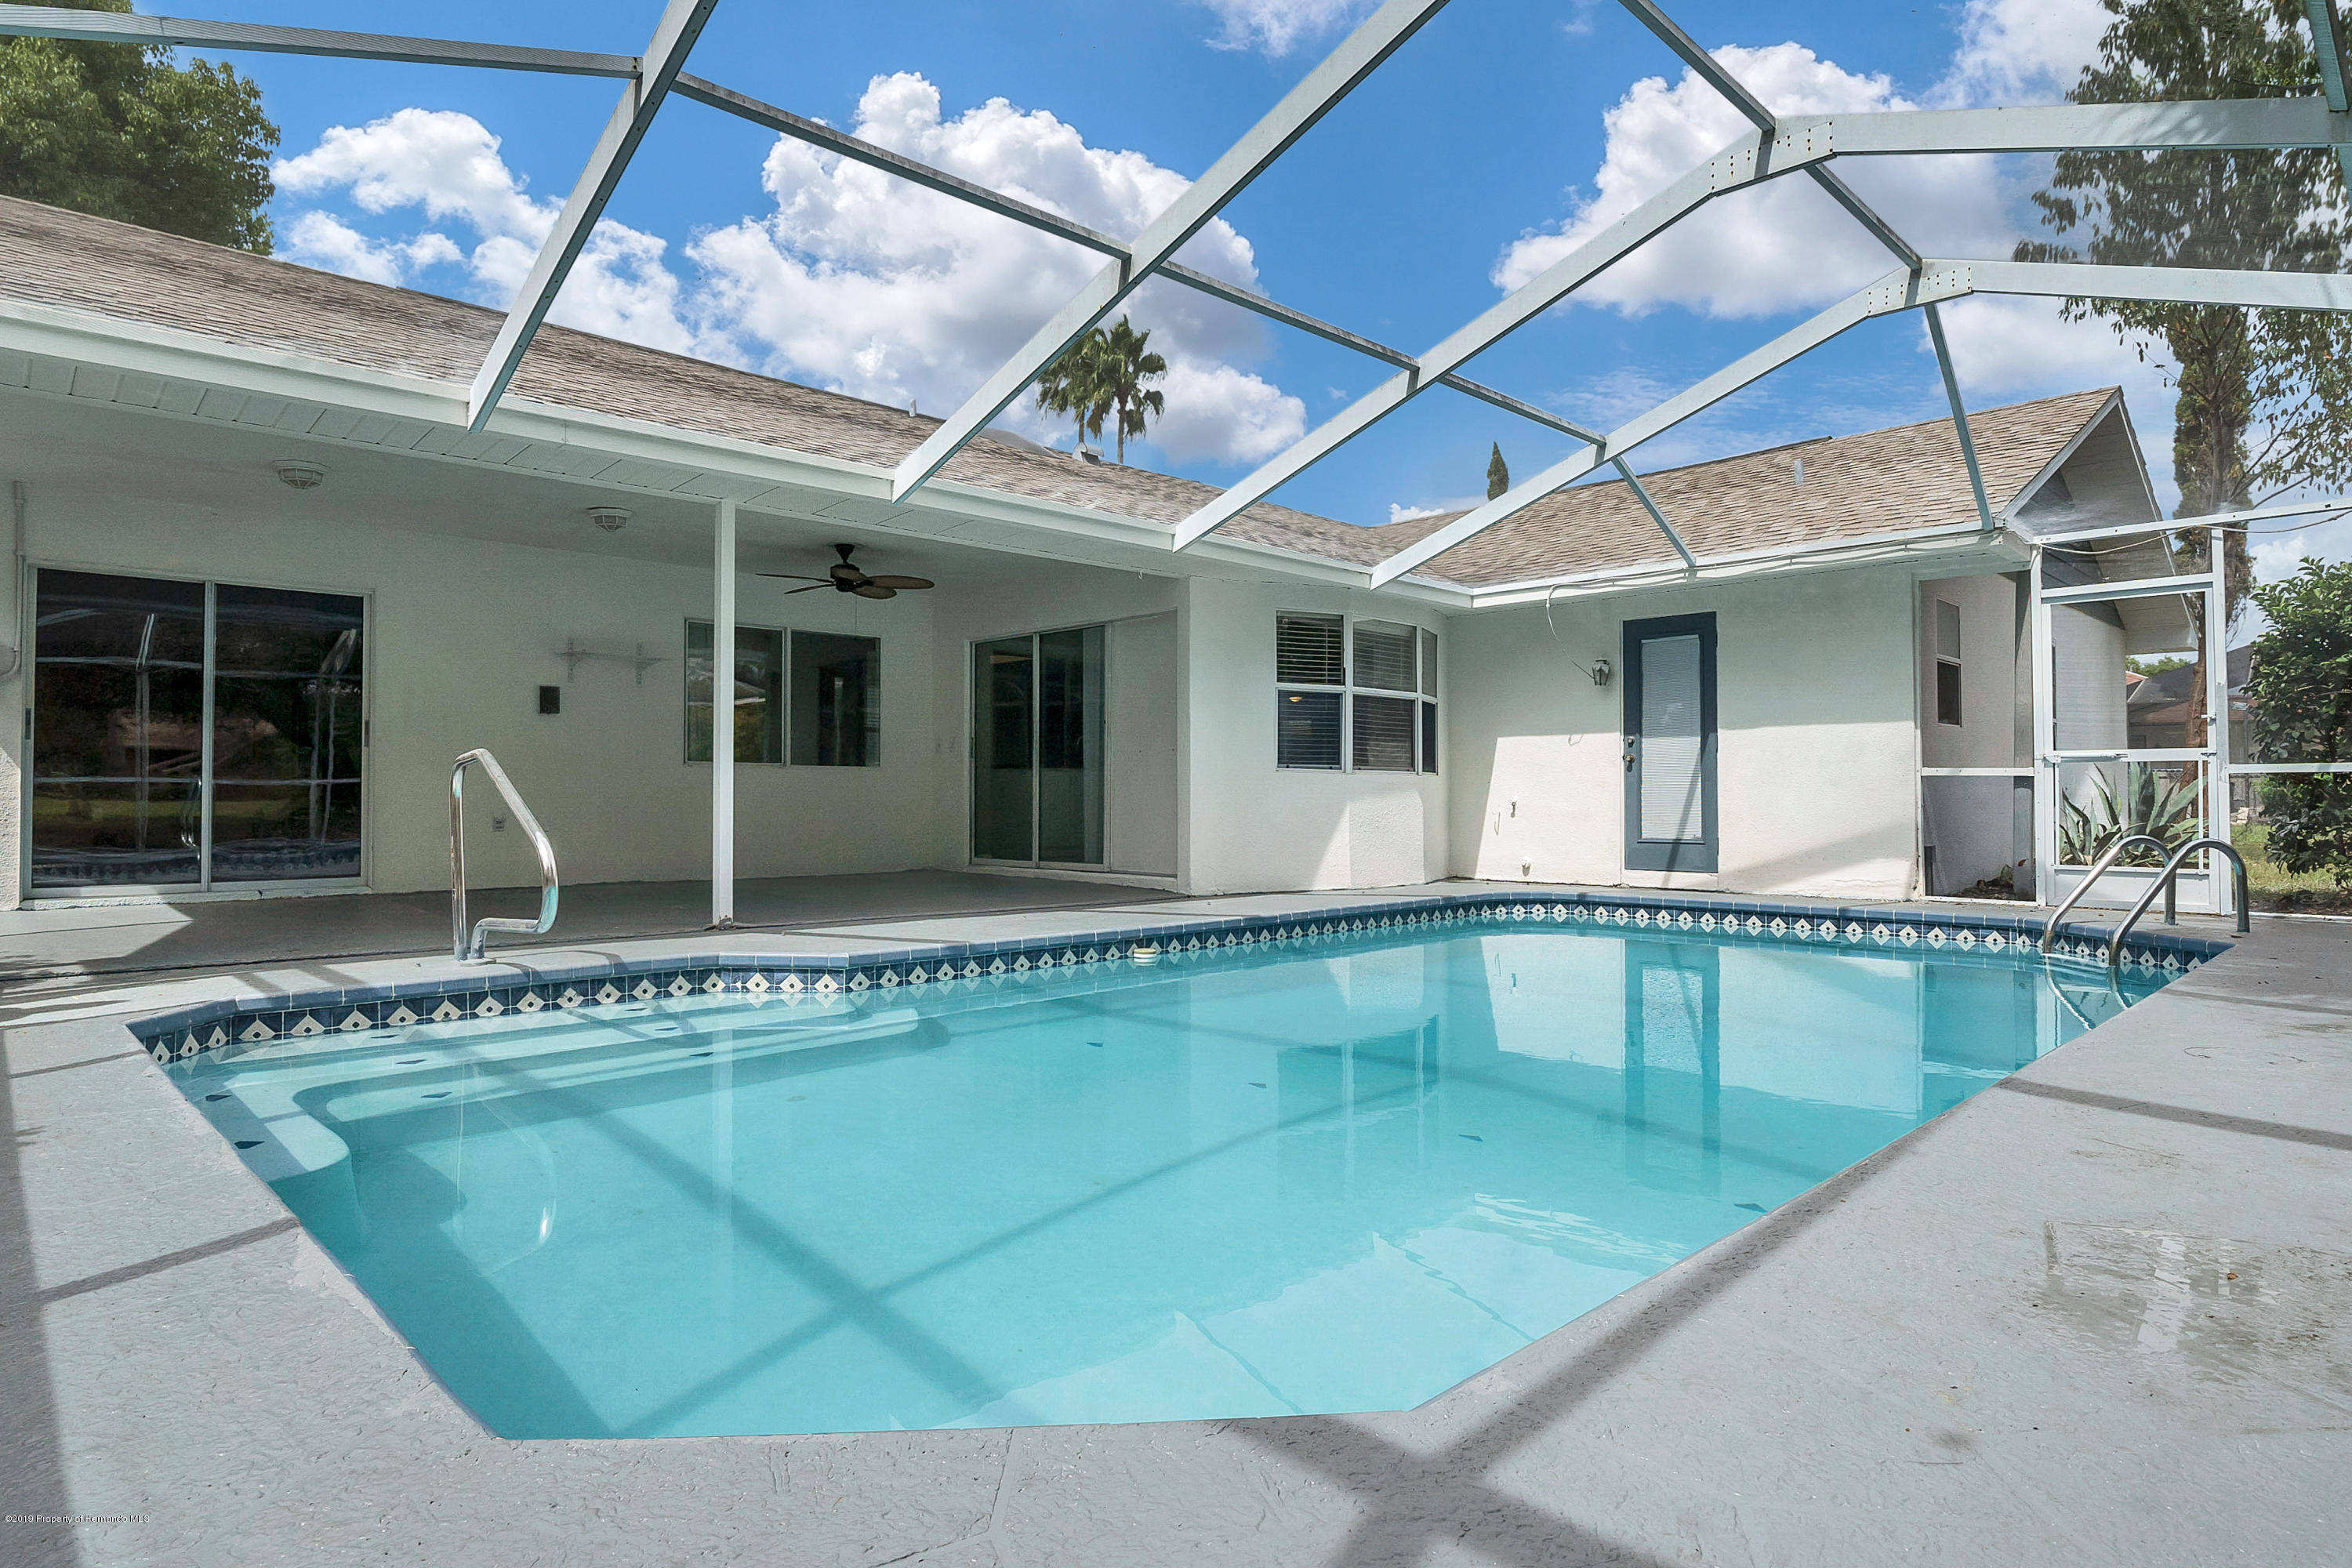 10608 Horizon, Spring Hill, Florida 34608, 4 Bedrooms Bedrooms, ,2 BathroomsBathrooms,Residential,For Sale,Horizon,2204541